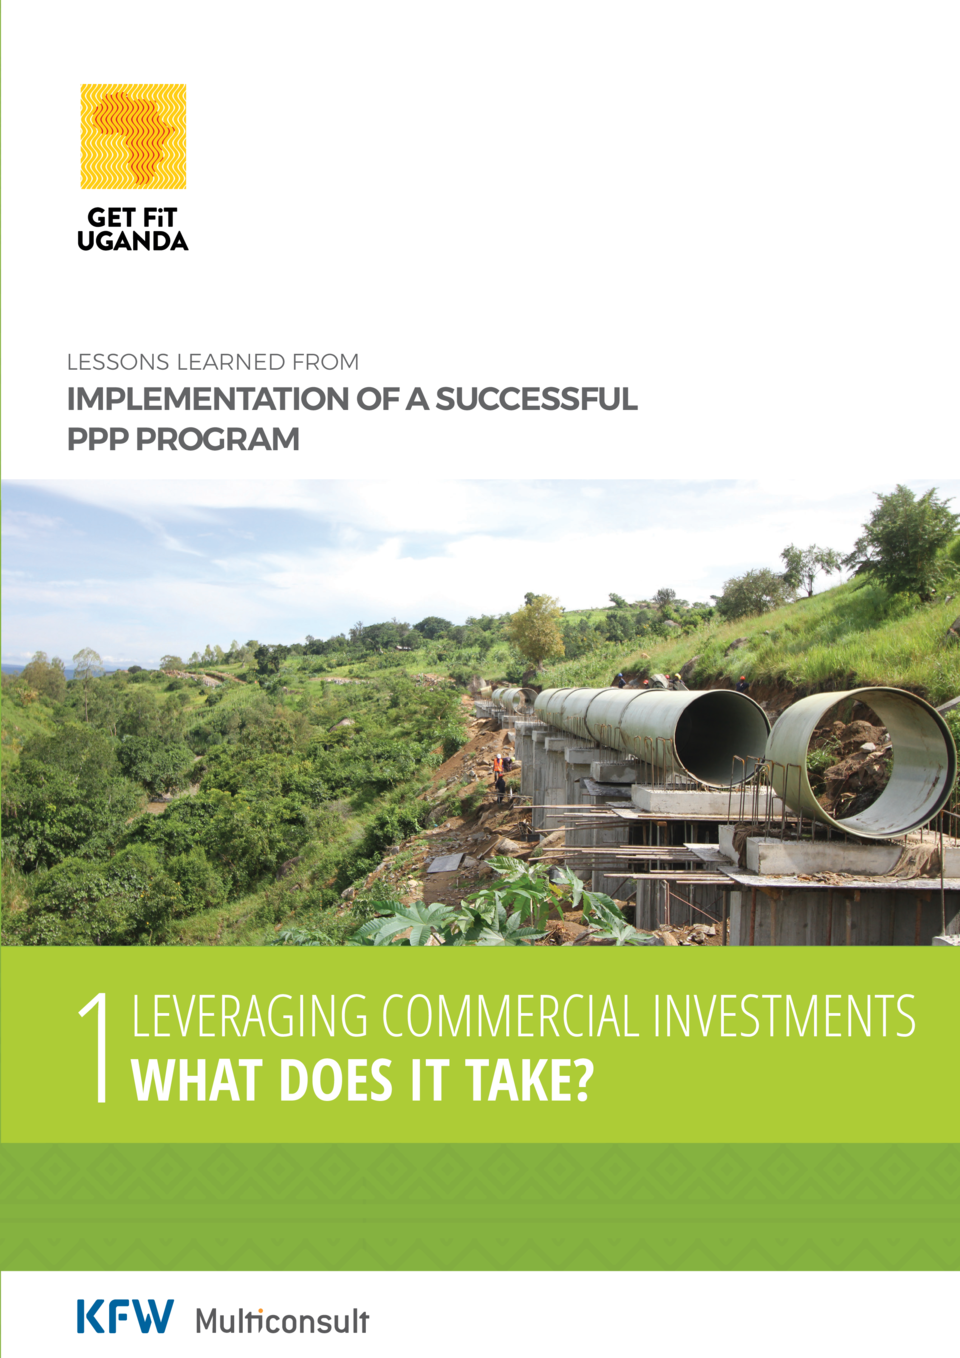 LESSONS LEARNED FROM  IMPLEMENTATION OF A SUCCESSFUL PPP PROGRAM  1  LEVERAGING COMMERCIAL INVESTMENTS WHAT DOES IT TAKE  ...